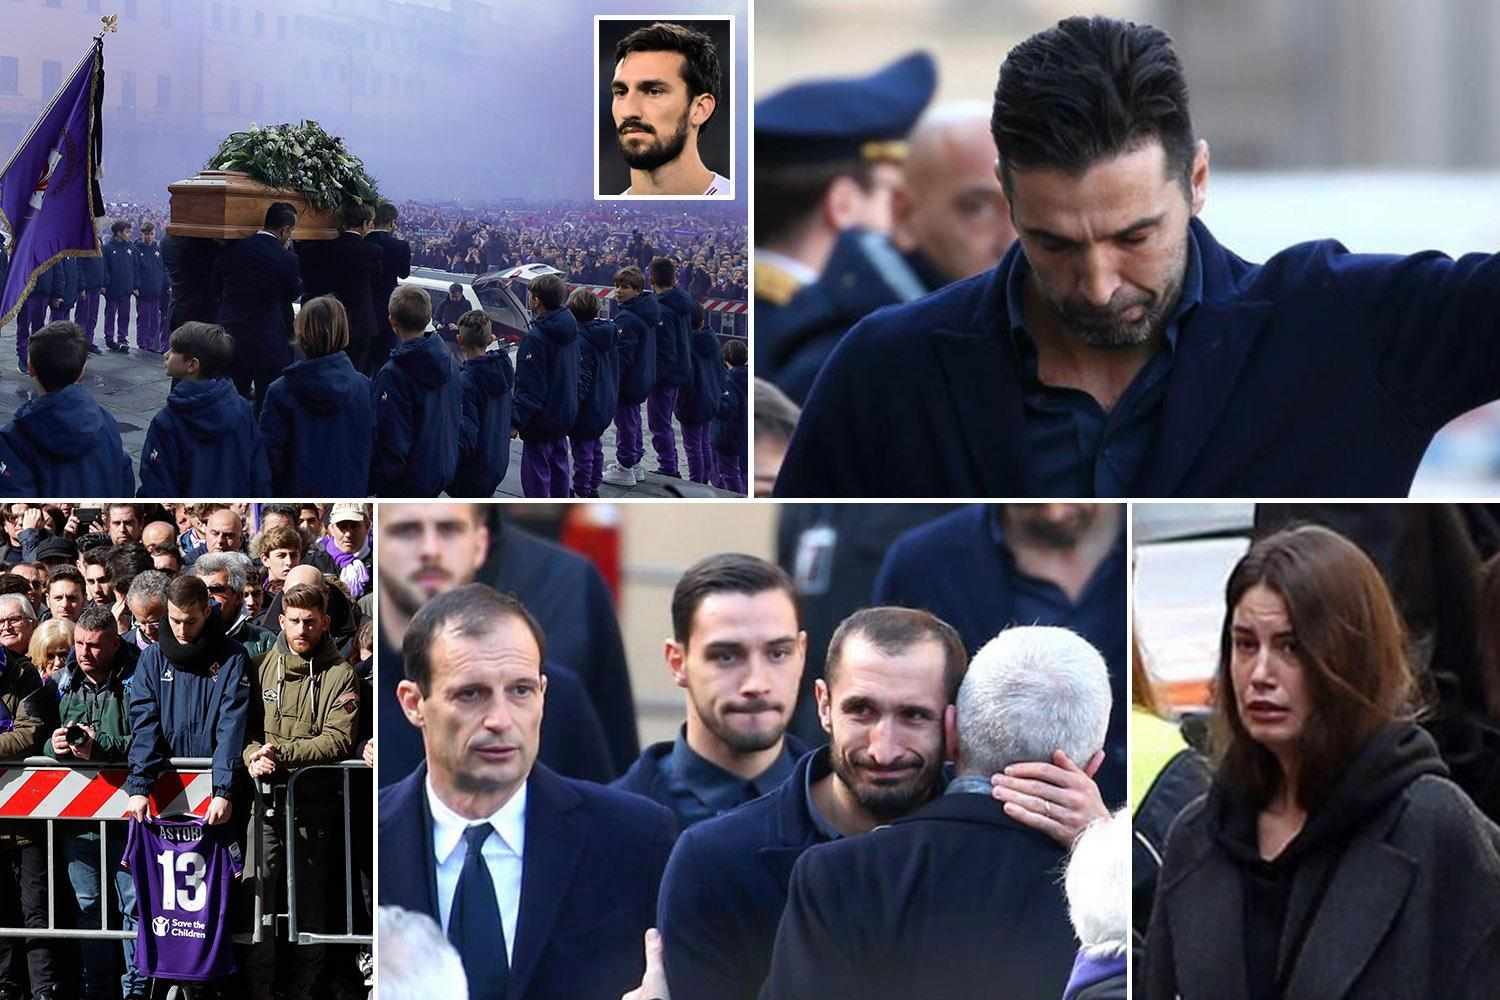 Davide Astori funeral held as mourners turn sky purple in packed square outside service after Fiorentina captain's death aged just 31